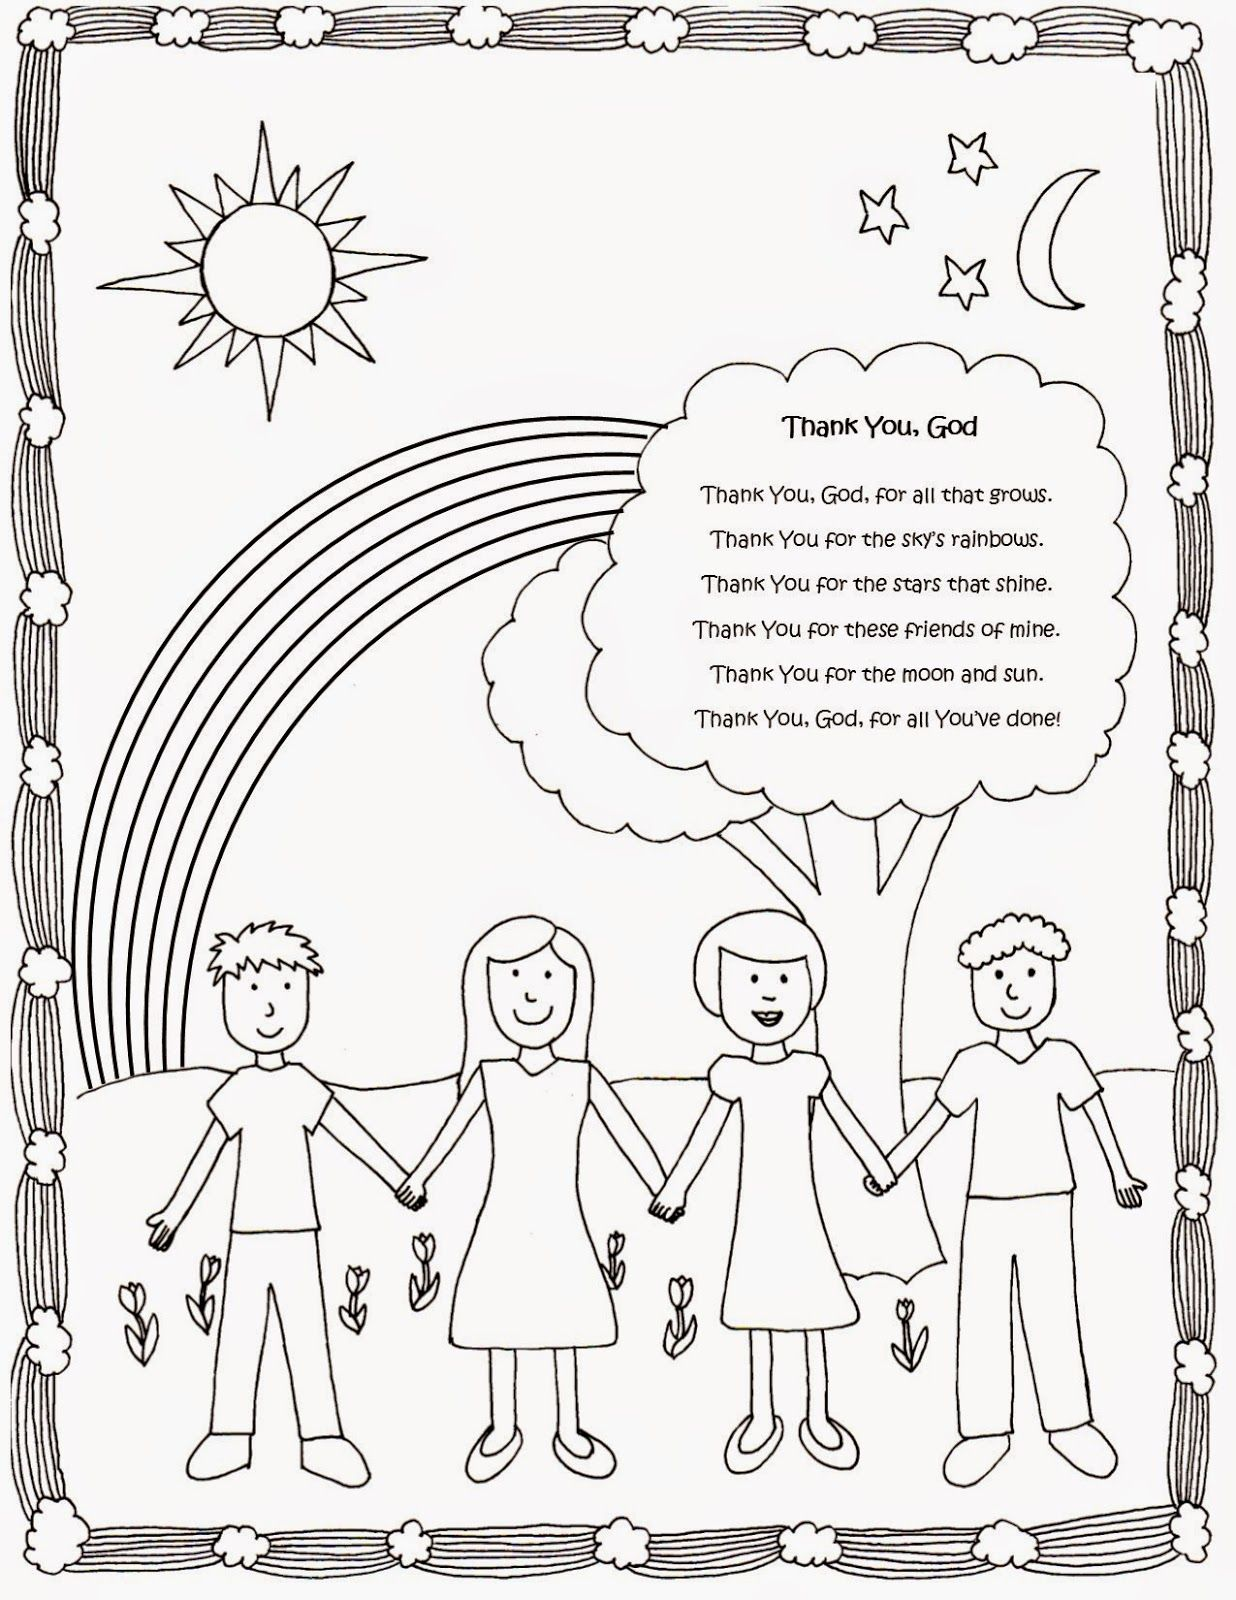 Drawn2bcreative Cute And Free Coloring Page With Thank You God P Sunday School Coloring Pages Free Coloring Pages Bible Verse Coloring Page